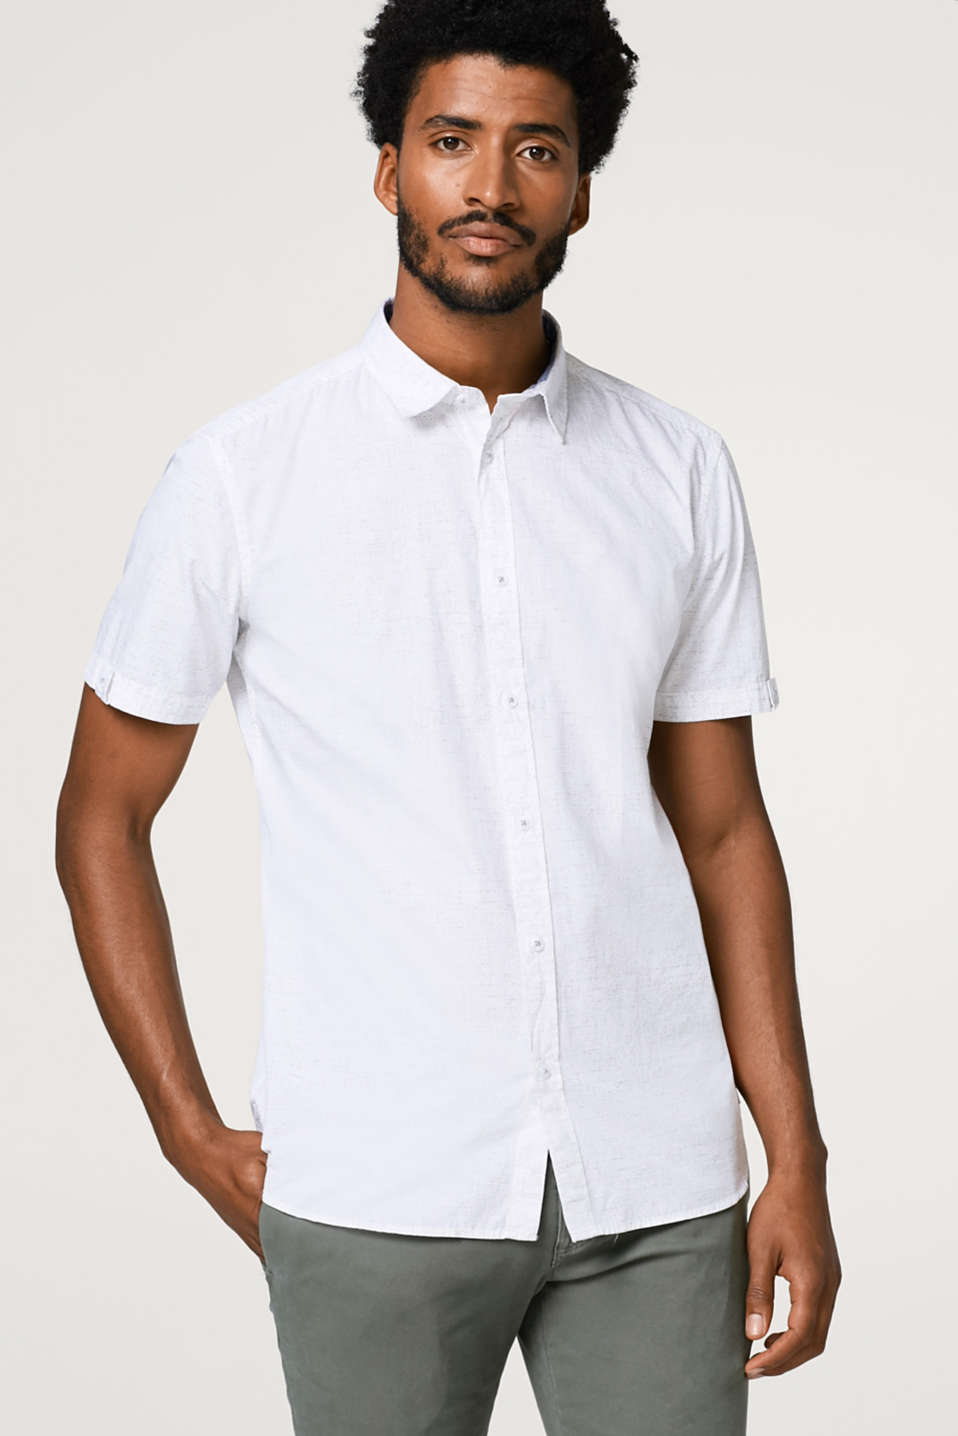 Esprit - Short sleeve shirt with a fine pattern, in cotton